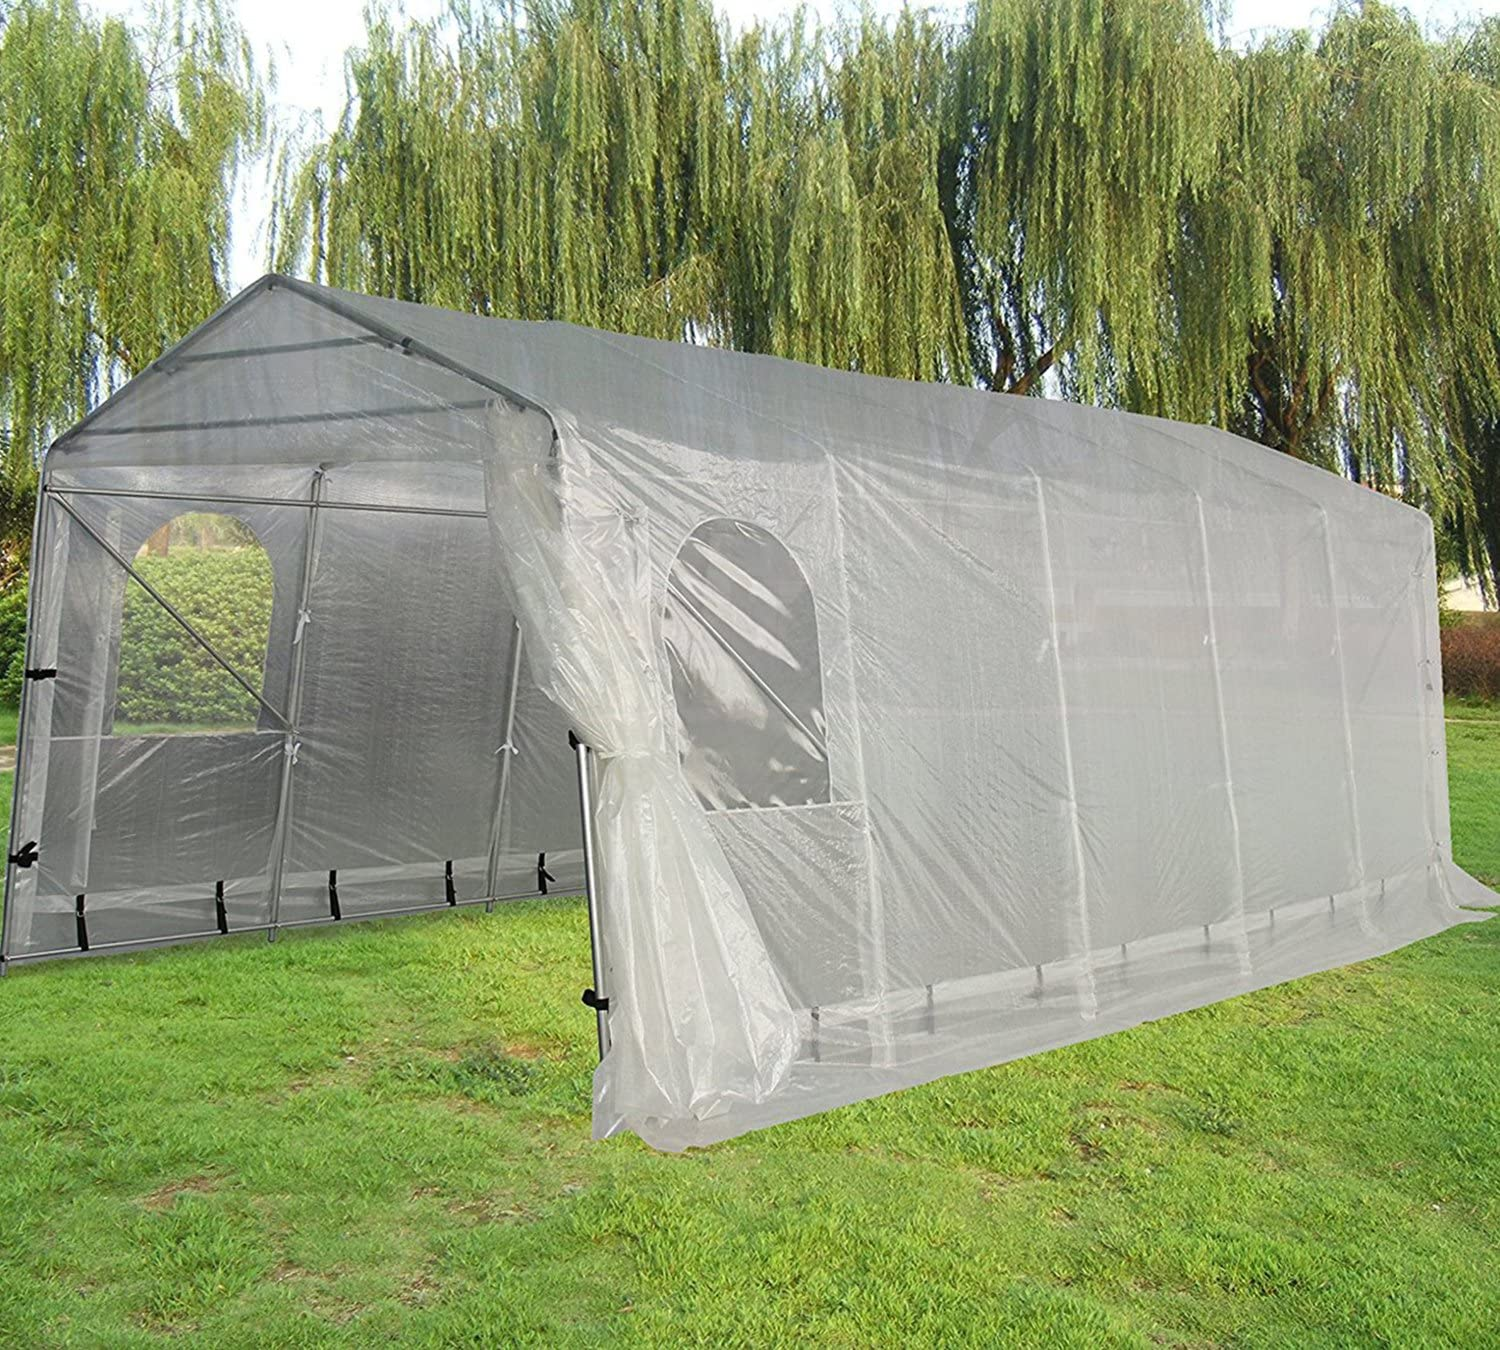 coverpro 10x17 portable garage replacement cover Archives ...